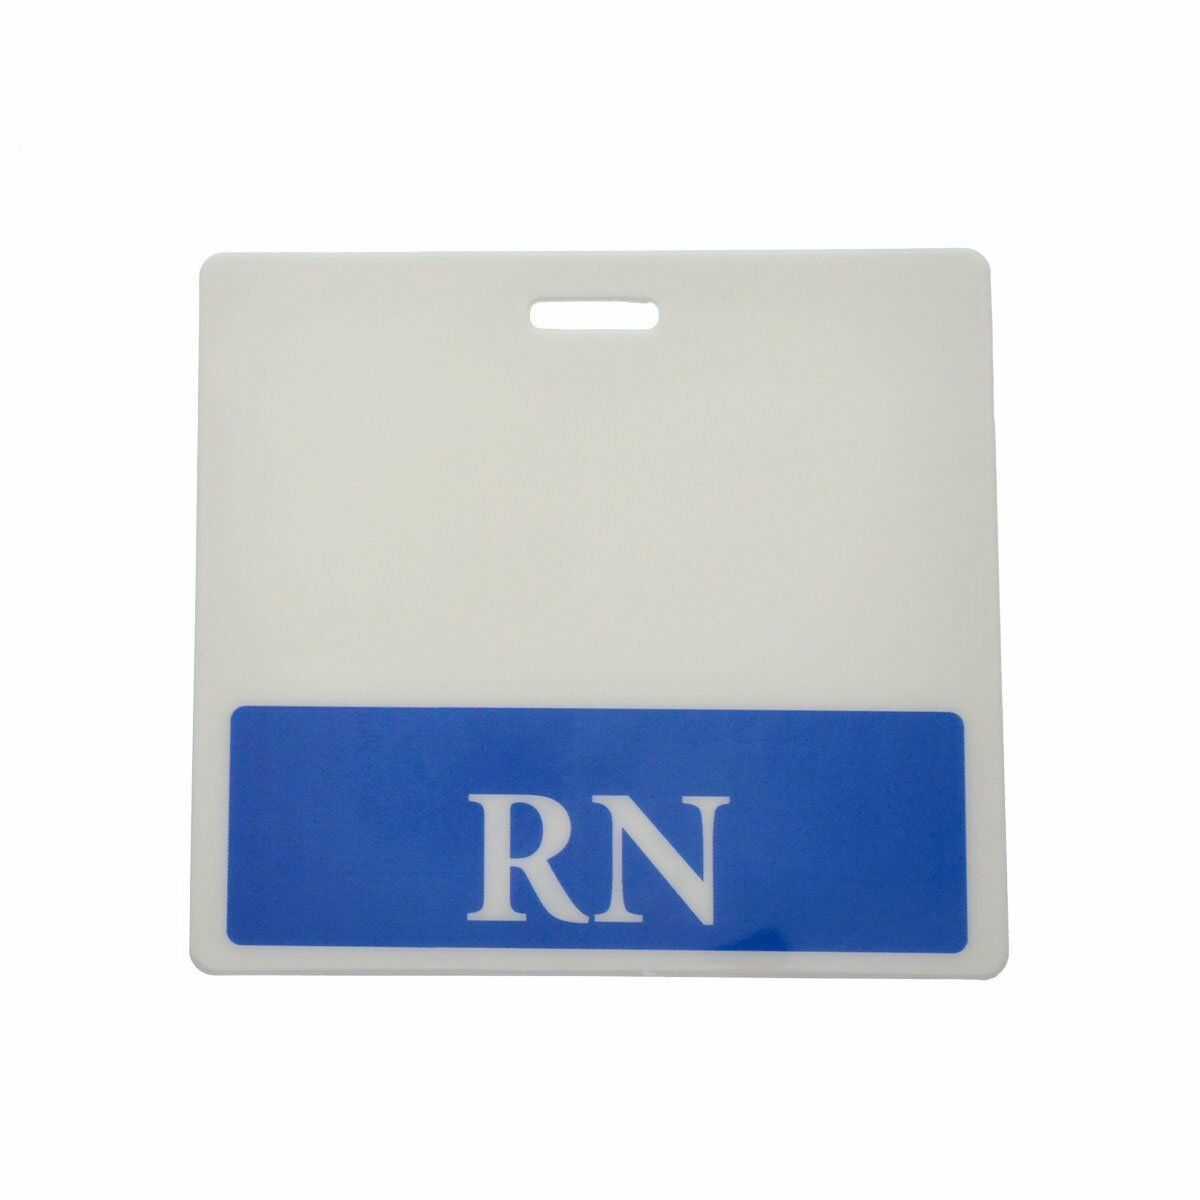 Sold Individually Clerk Horizontal Badge Buddy with Teal Border from Specialist ID